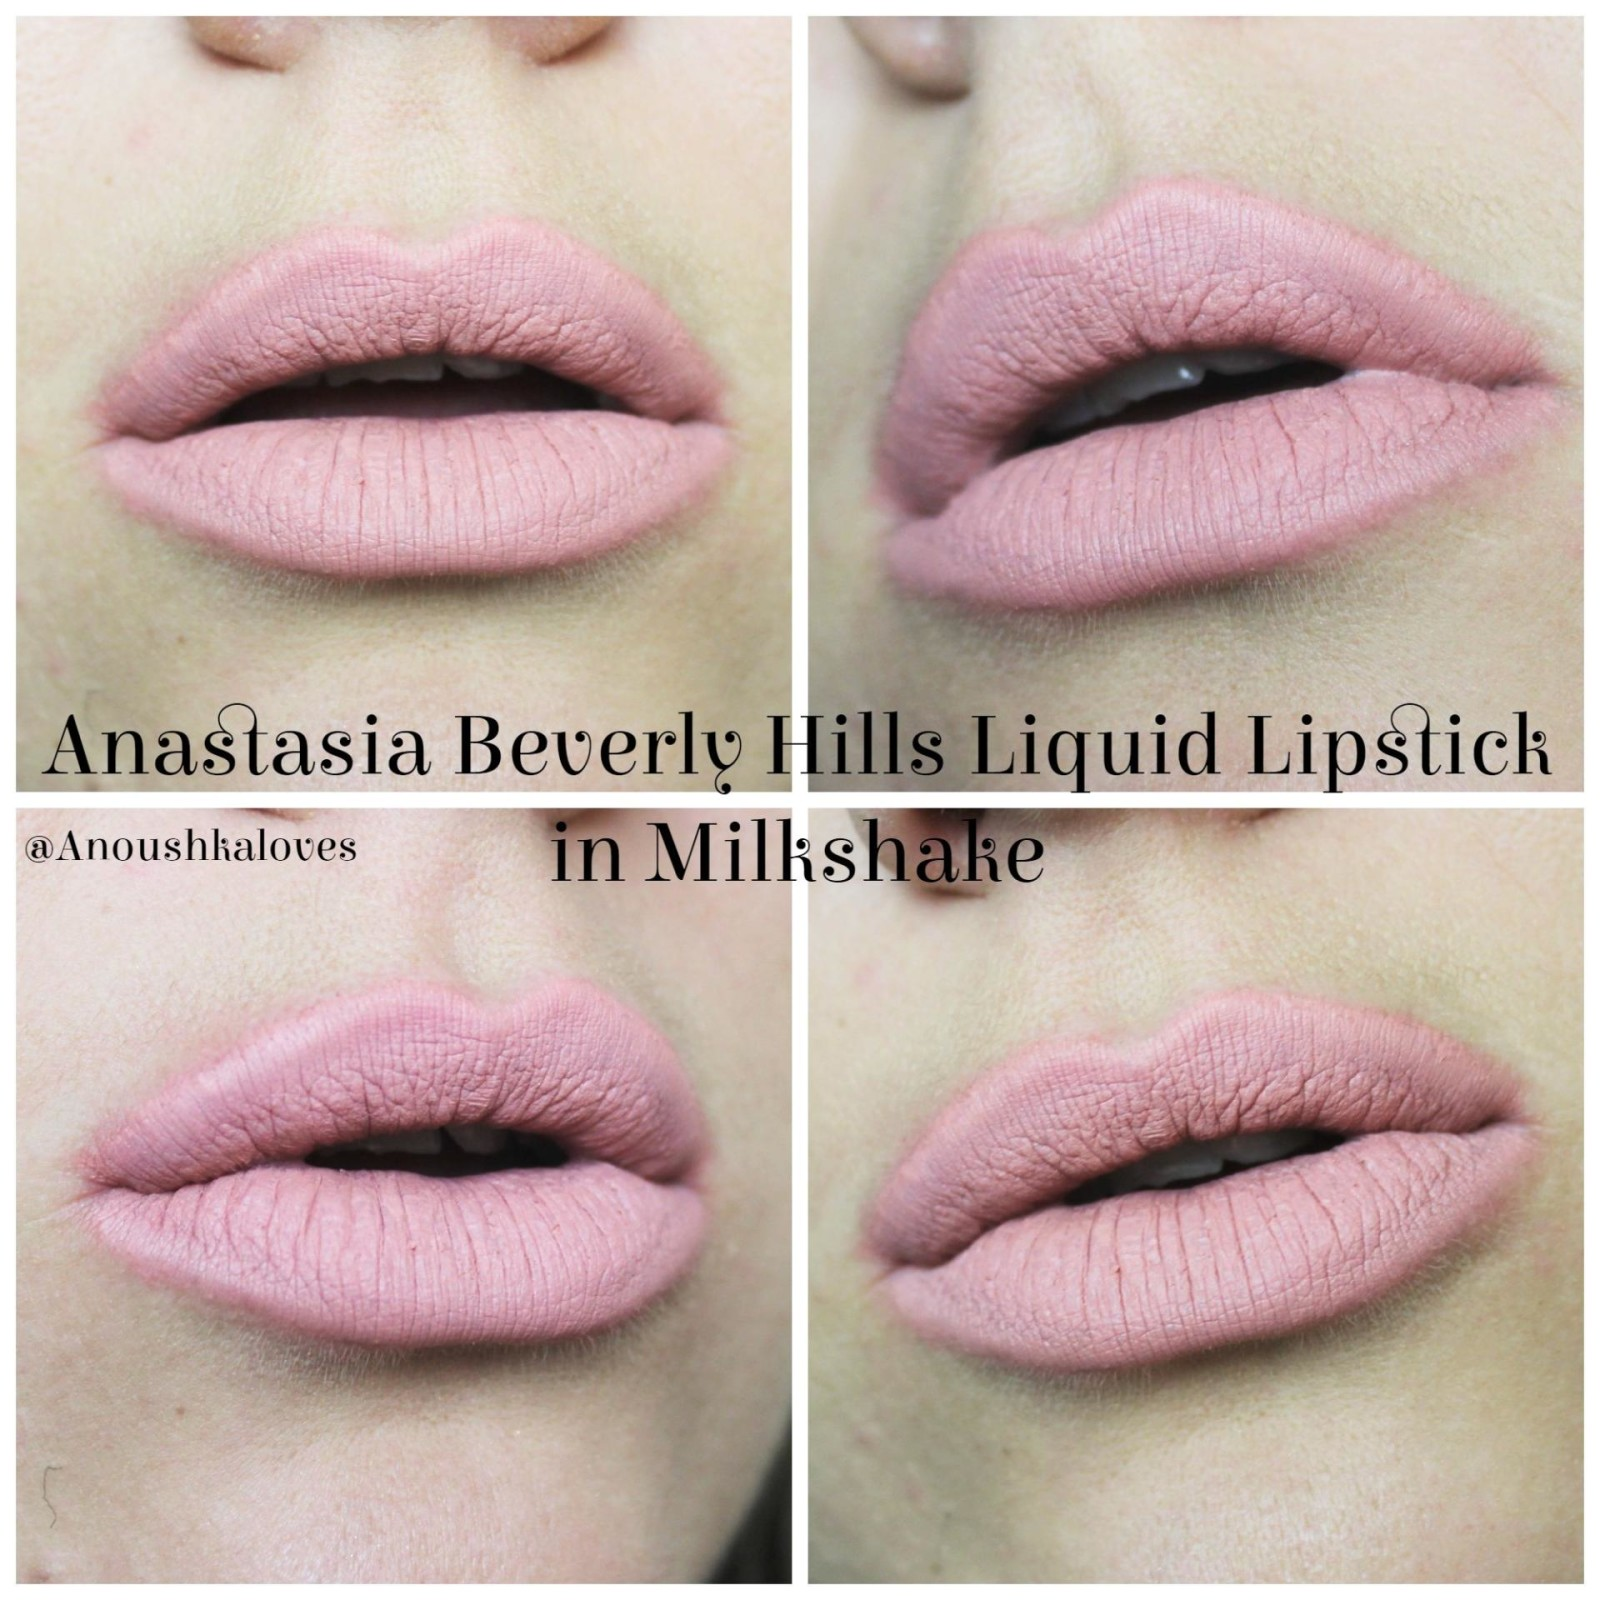 Anastasia Beverly Hills Pure Hollywood & Milkshake